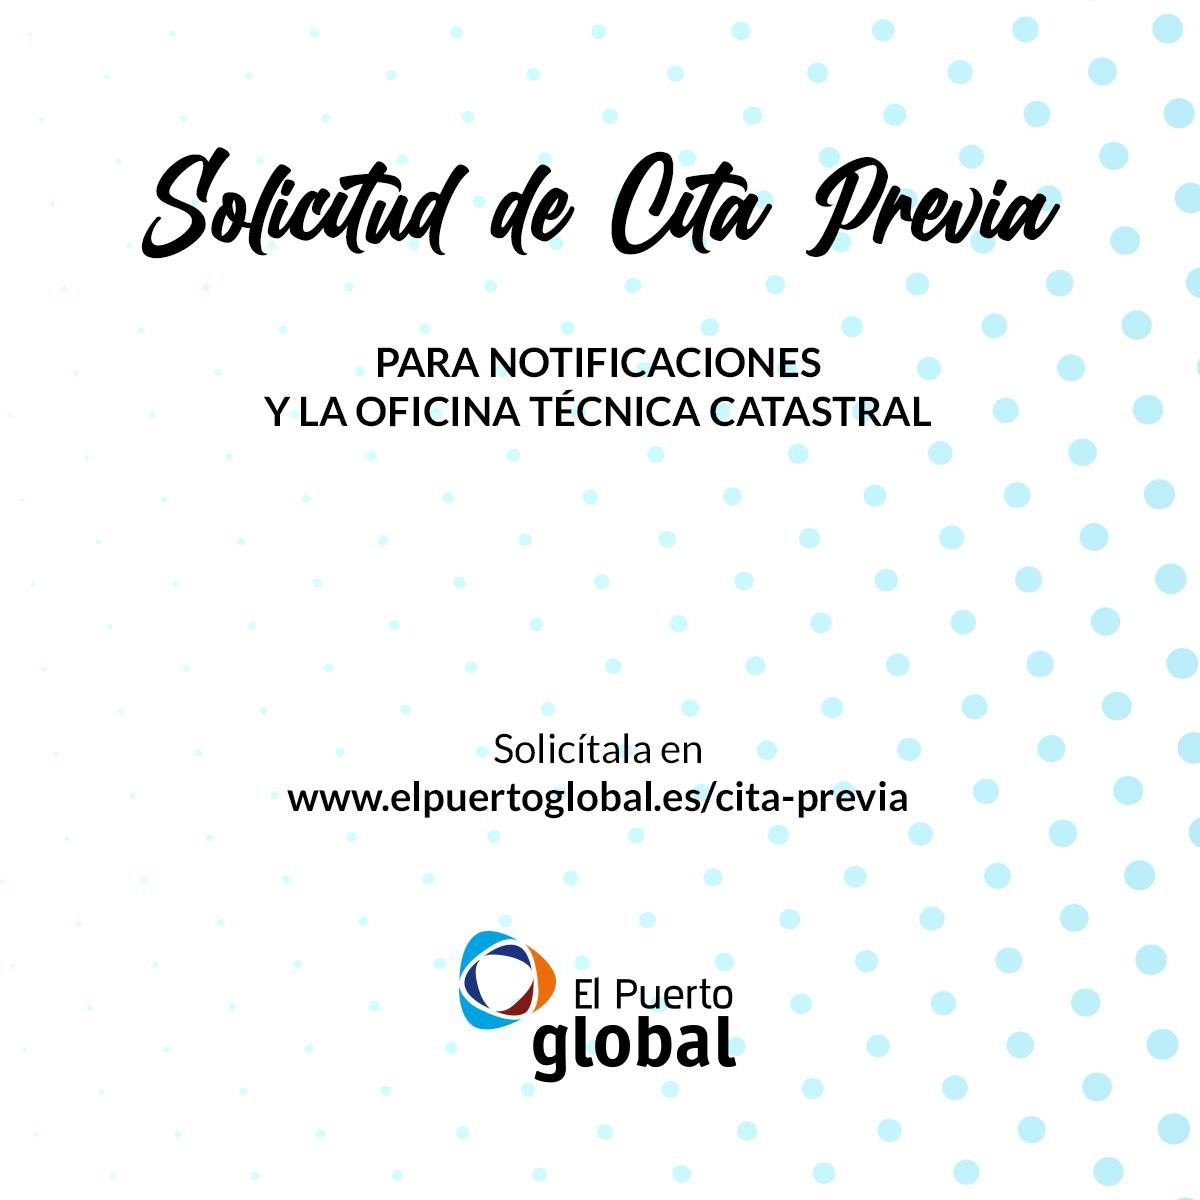 El Puerto global. viva